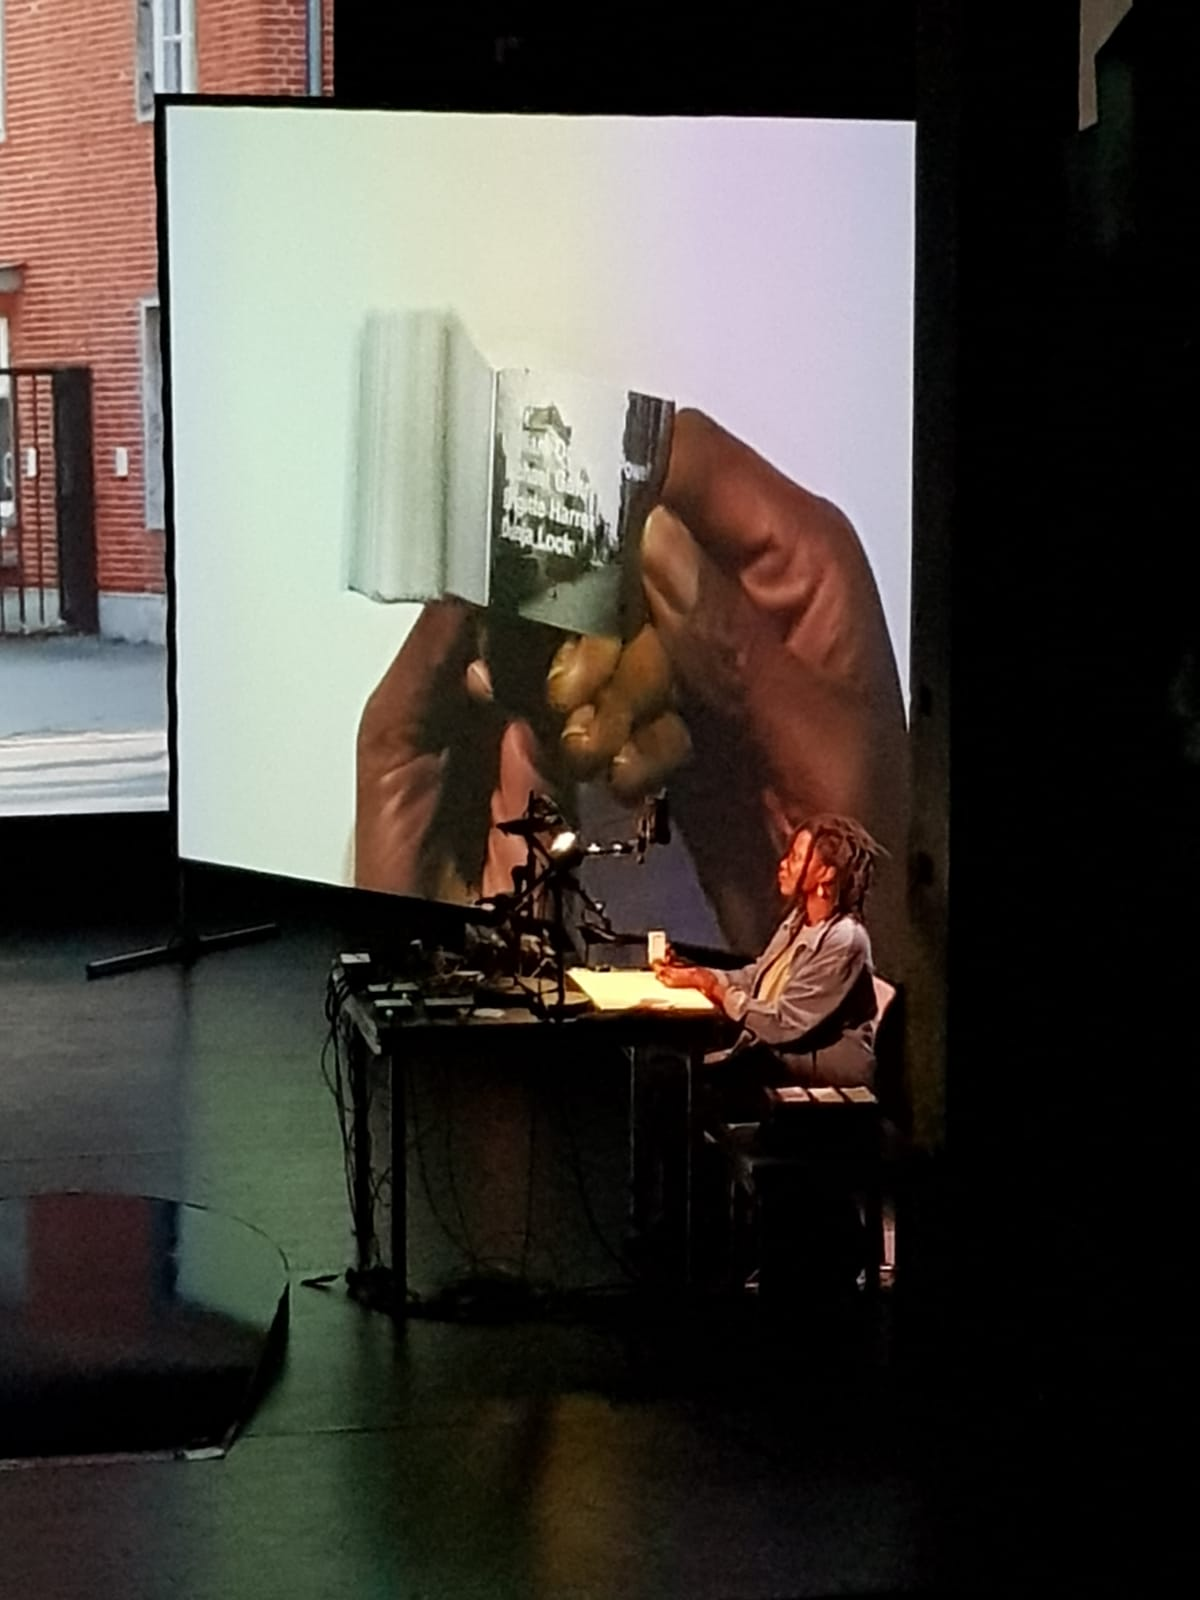 Woman with Brown skin sits at a table.. The screen behind her projects the image of her hands holding a flip book.